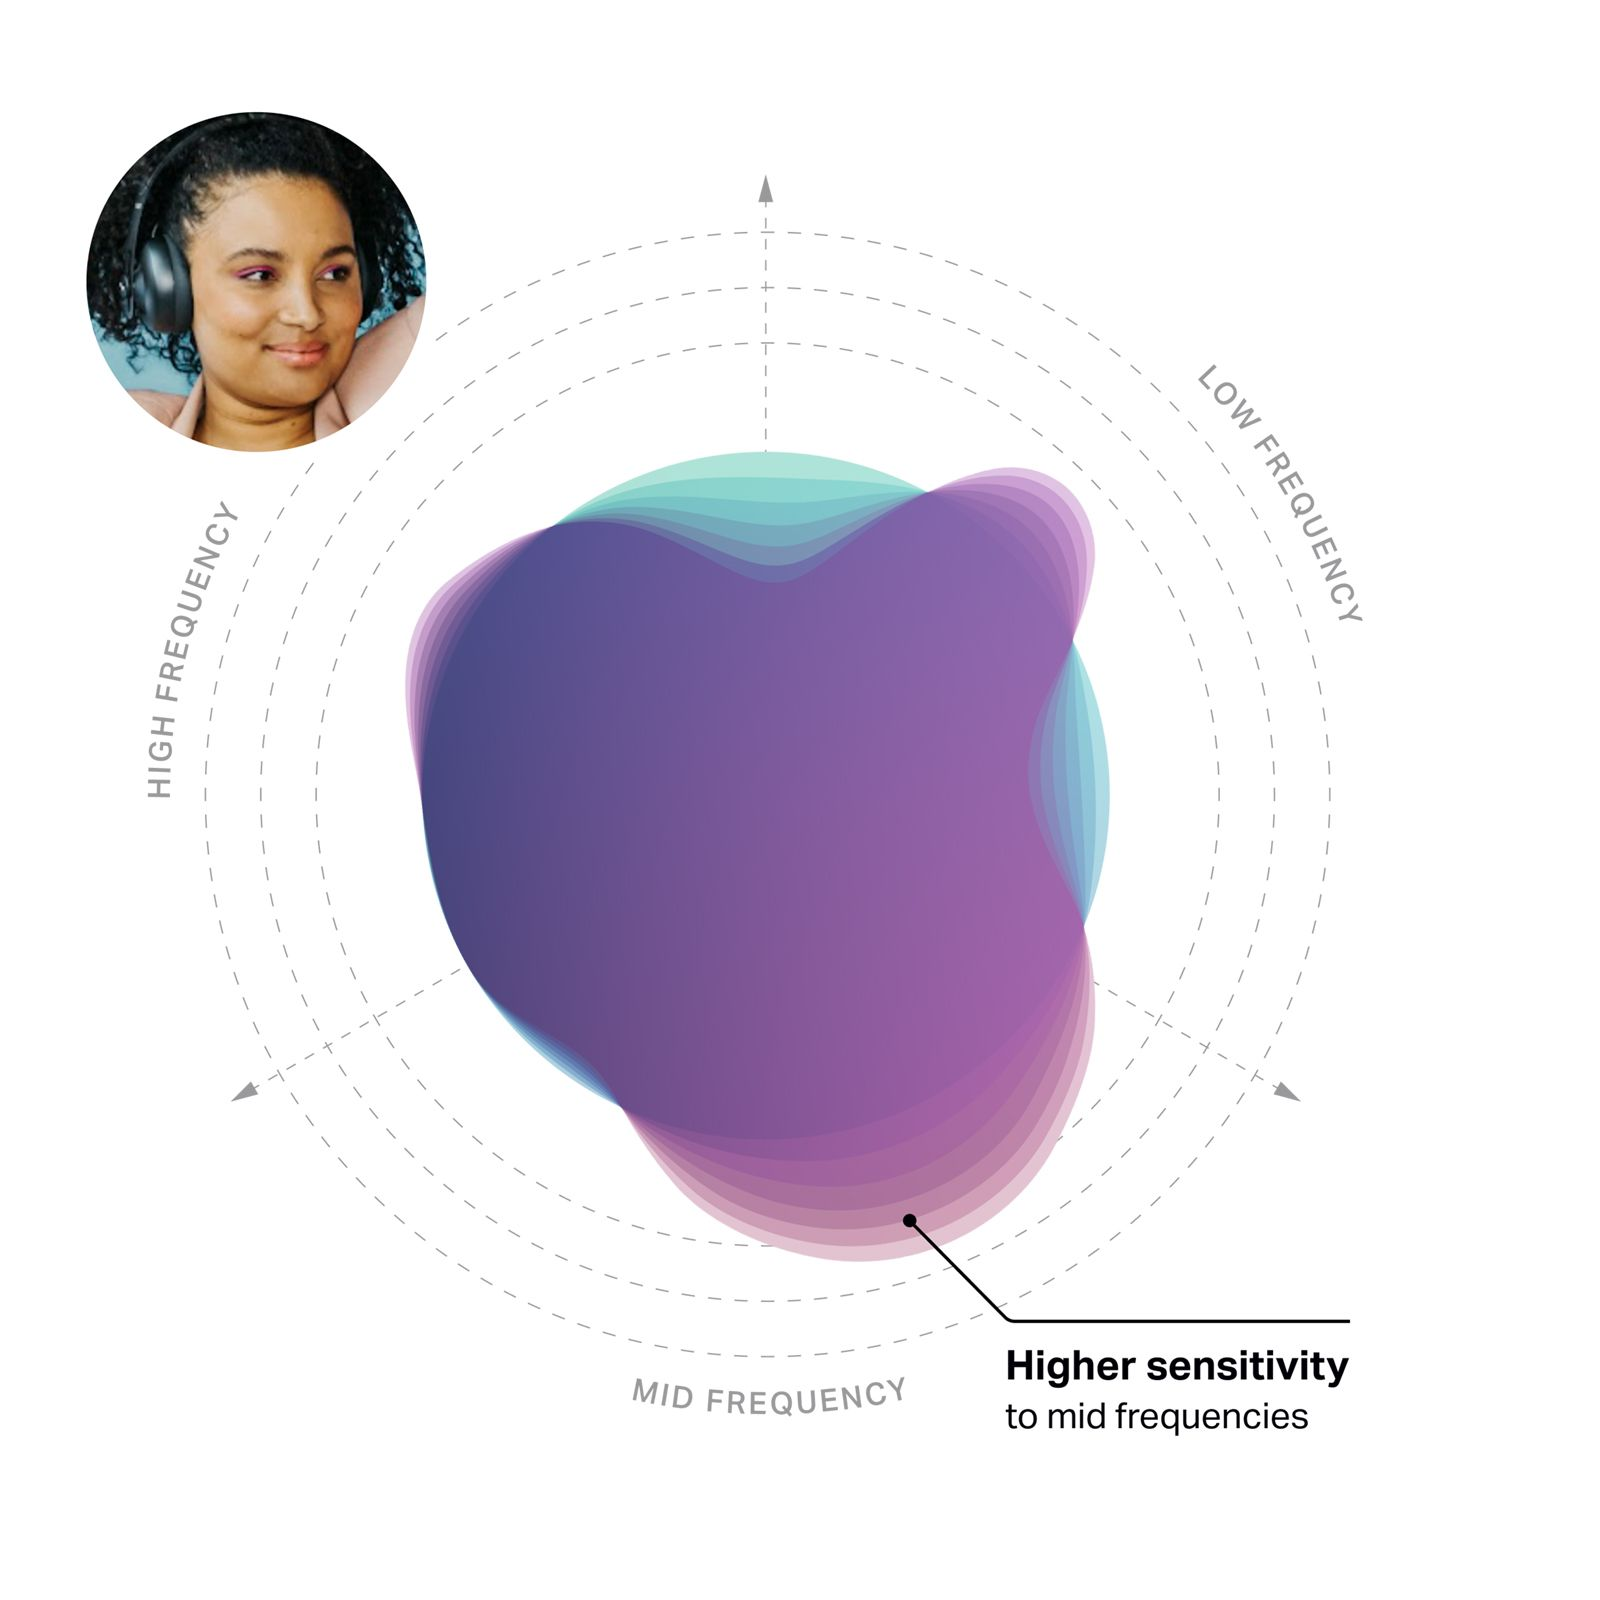 Nura hearing profile mapped on a frequency-sensitivity graph